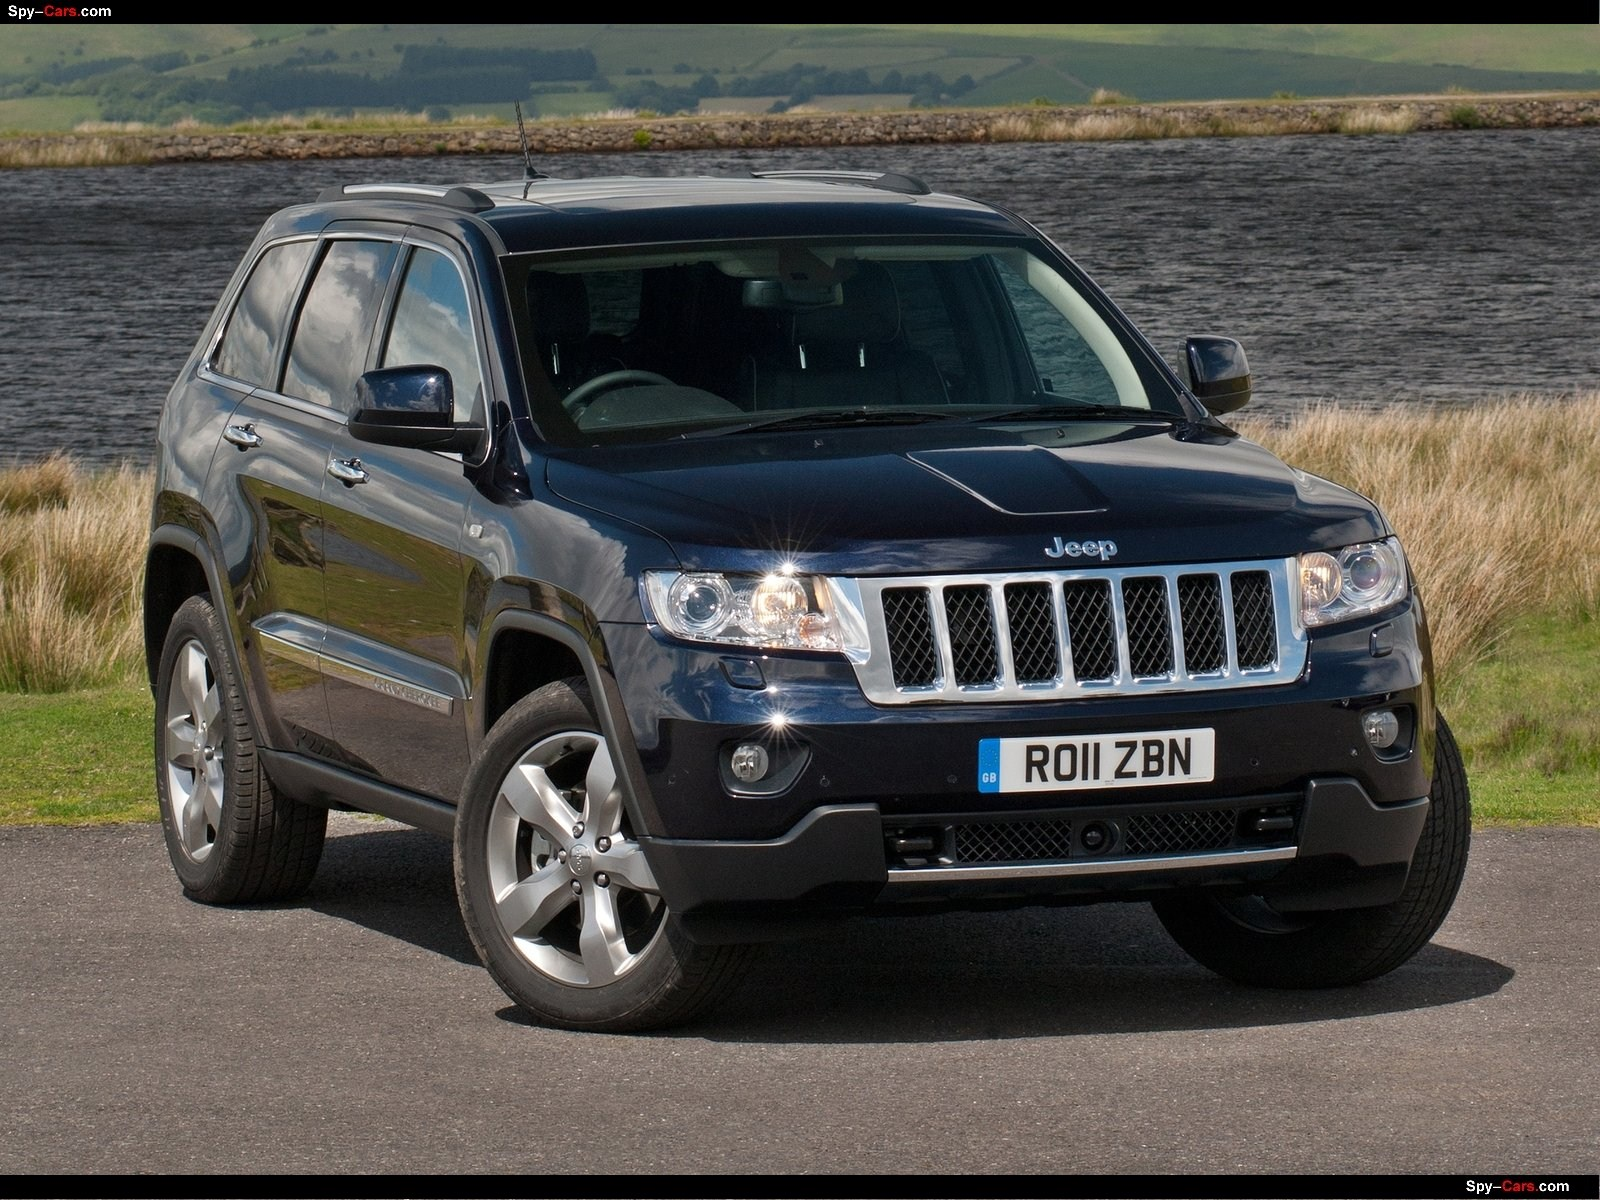 2011 jeep grand cherokee uk version jeep autos spain. Black Bedroom Furniture Sets. Home Design Ideas